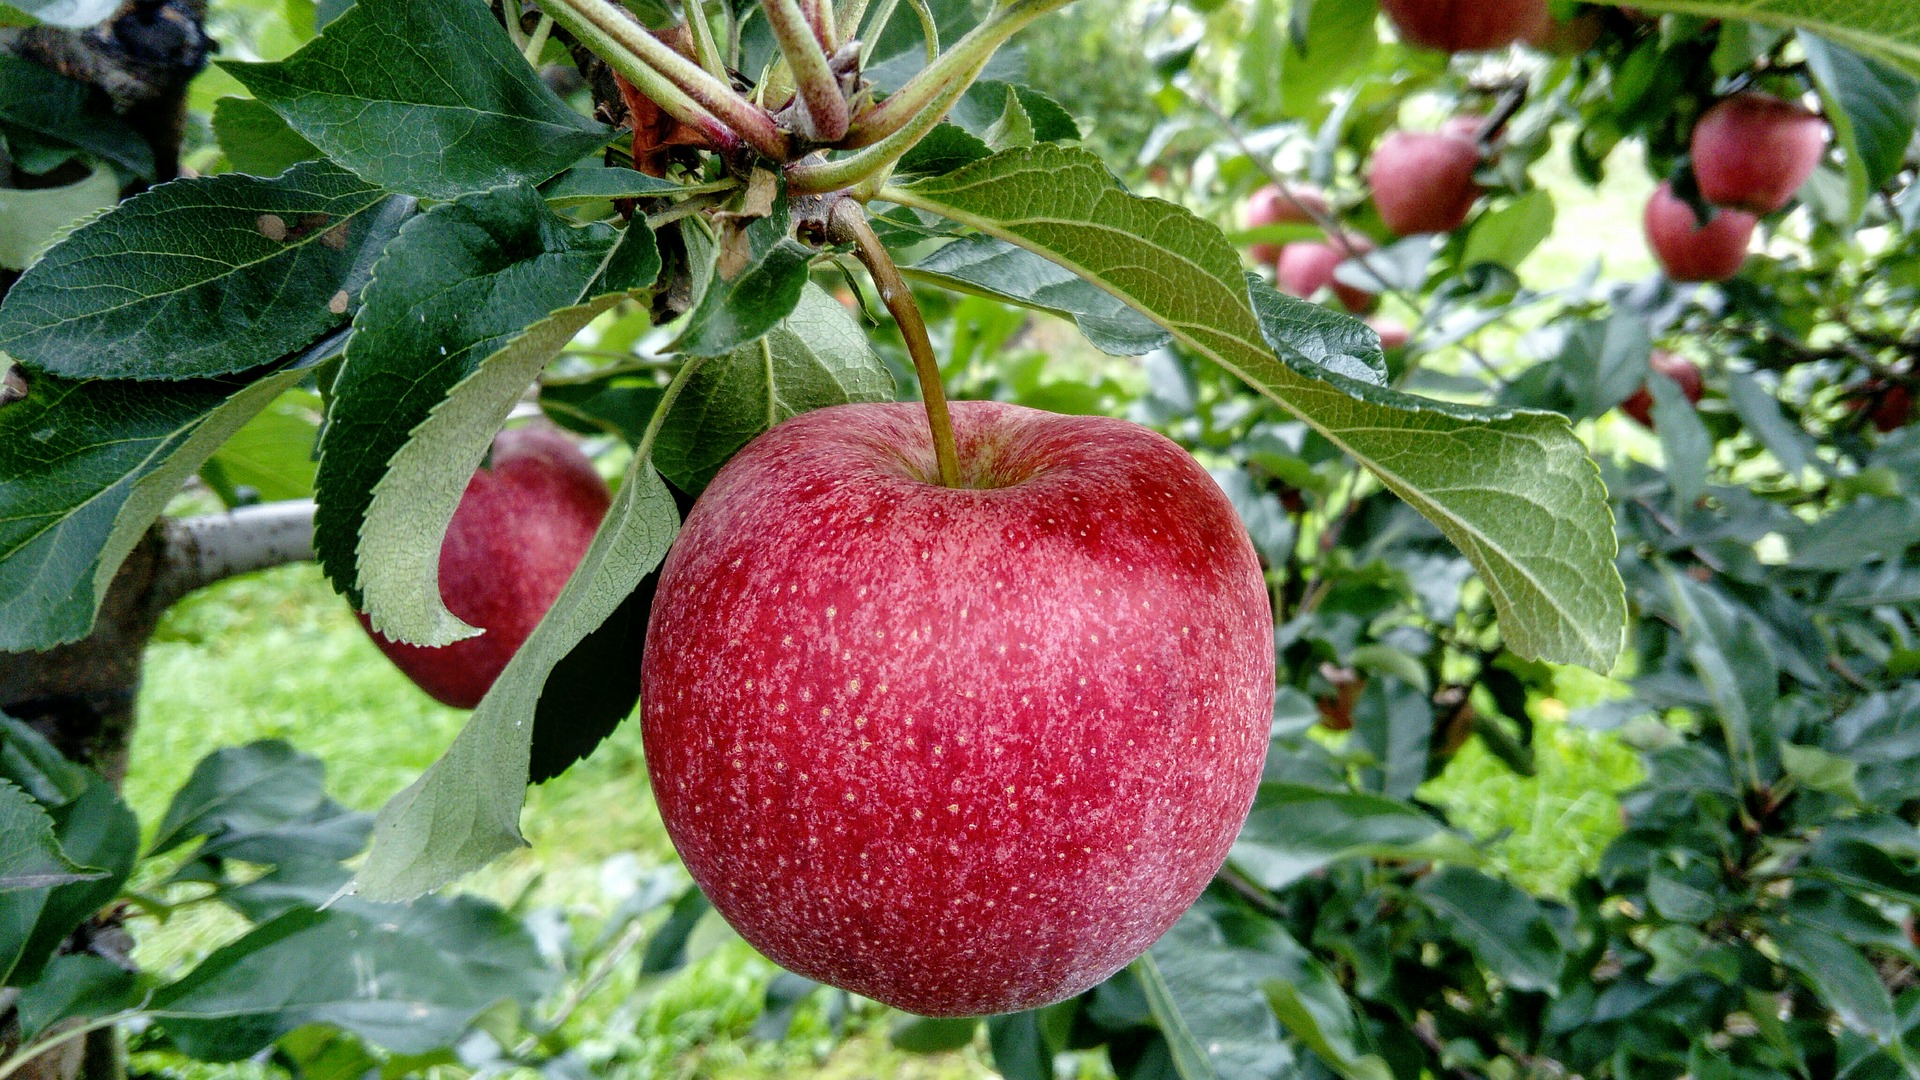 Growing Fruit – fresh fruit from your garden, allotment or patio gives lasting rewards